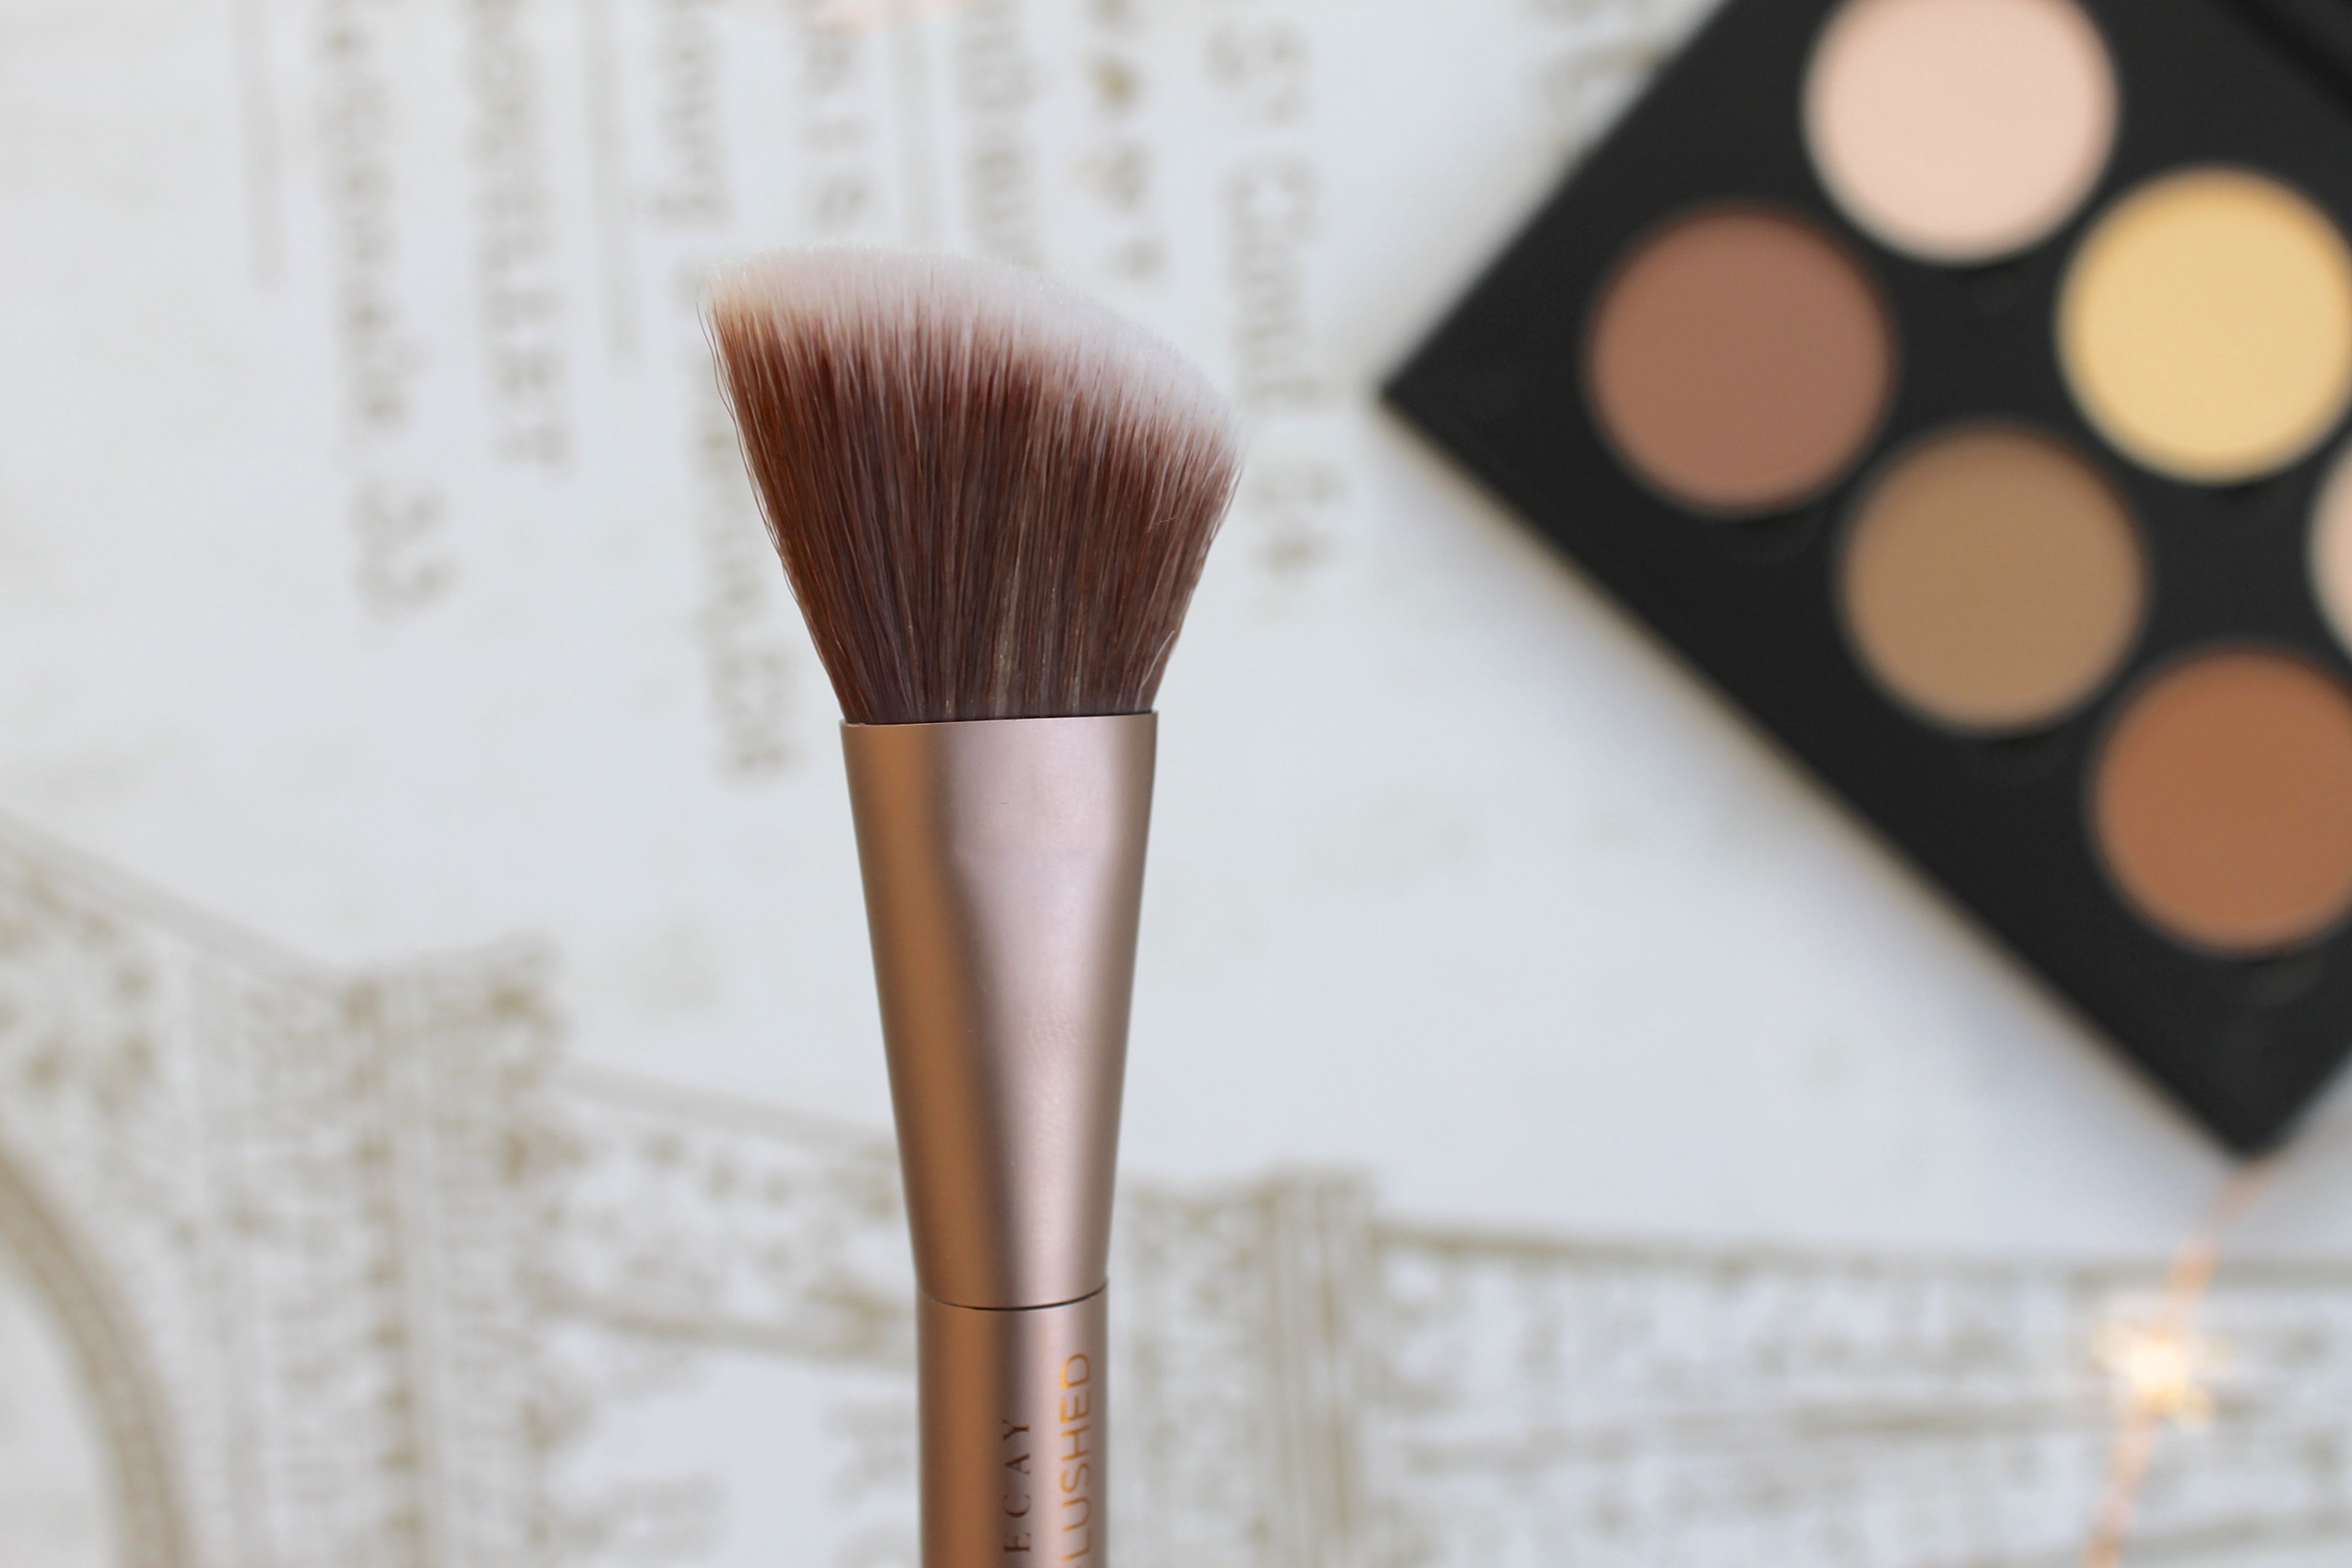 urban decay naked makeup brush